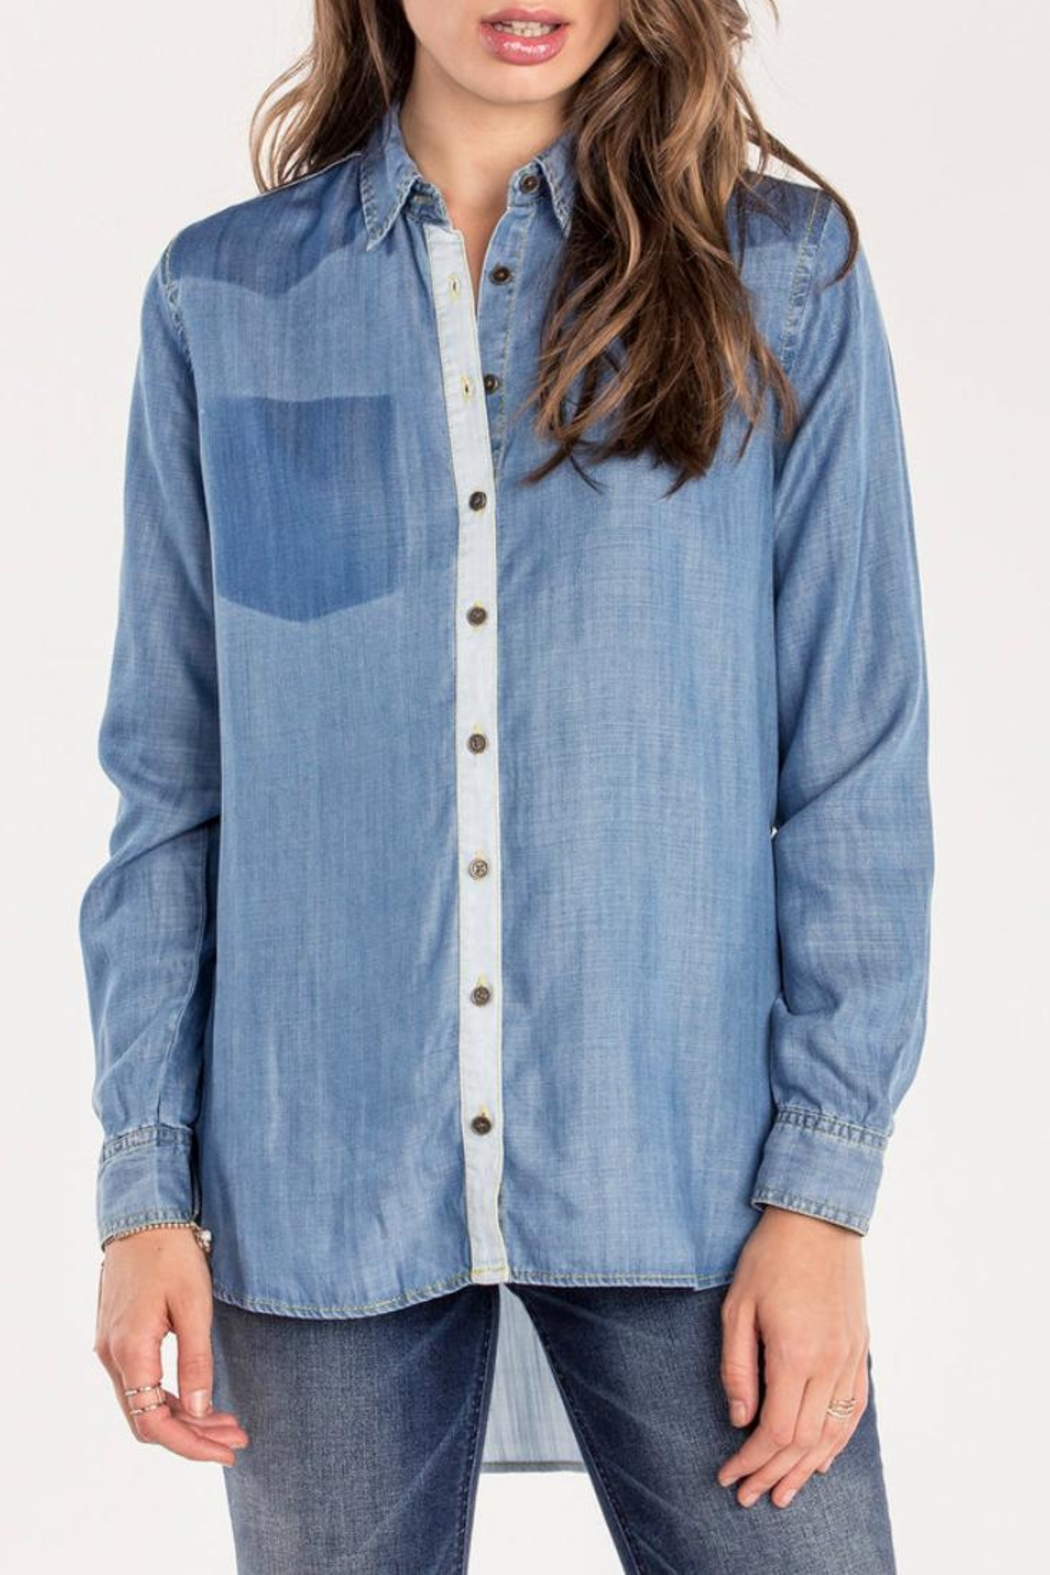 Miss Me Two Tone Chambray Top - Main Image